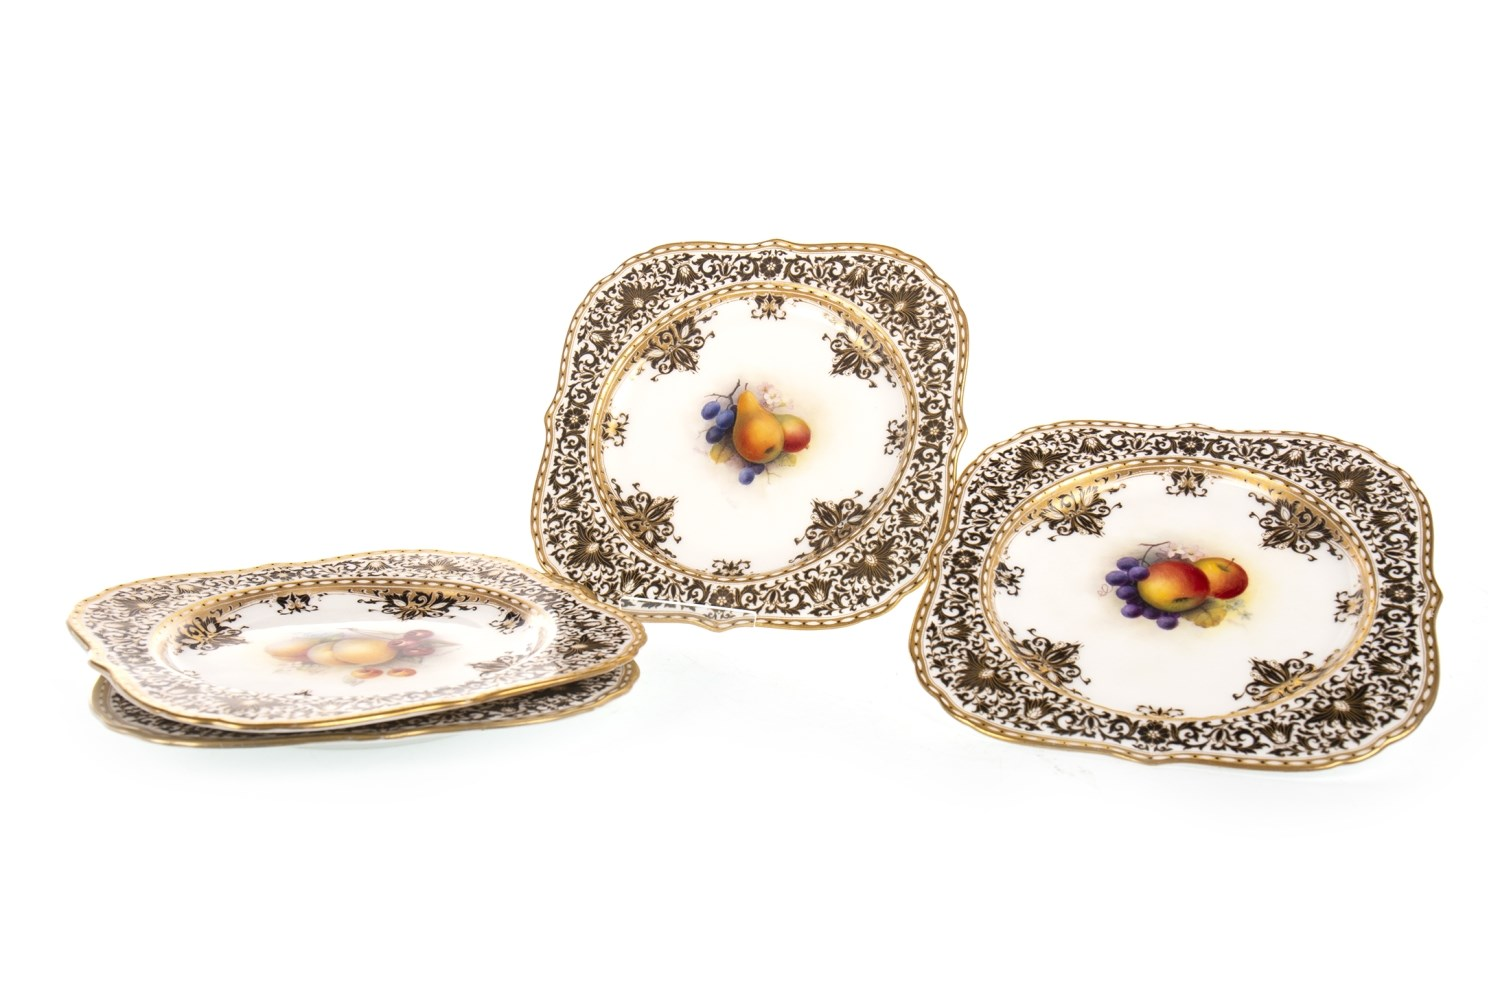 Lot 1270 - A SET OF FOUR ROYAL WORCESTER PLATES BY ALBERT SHUCK